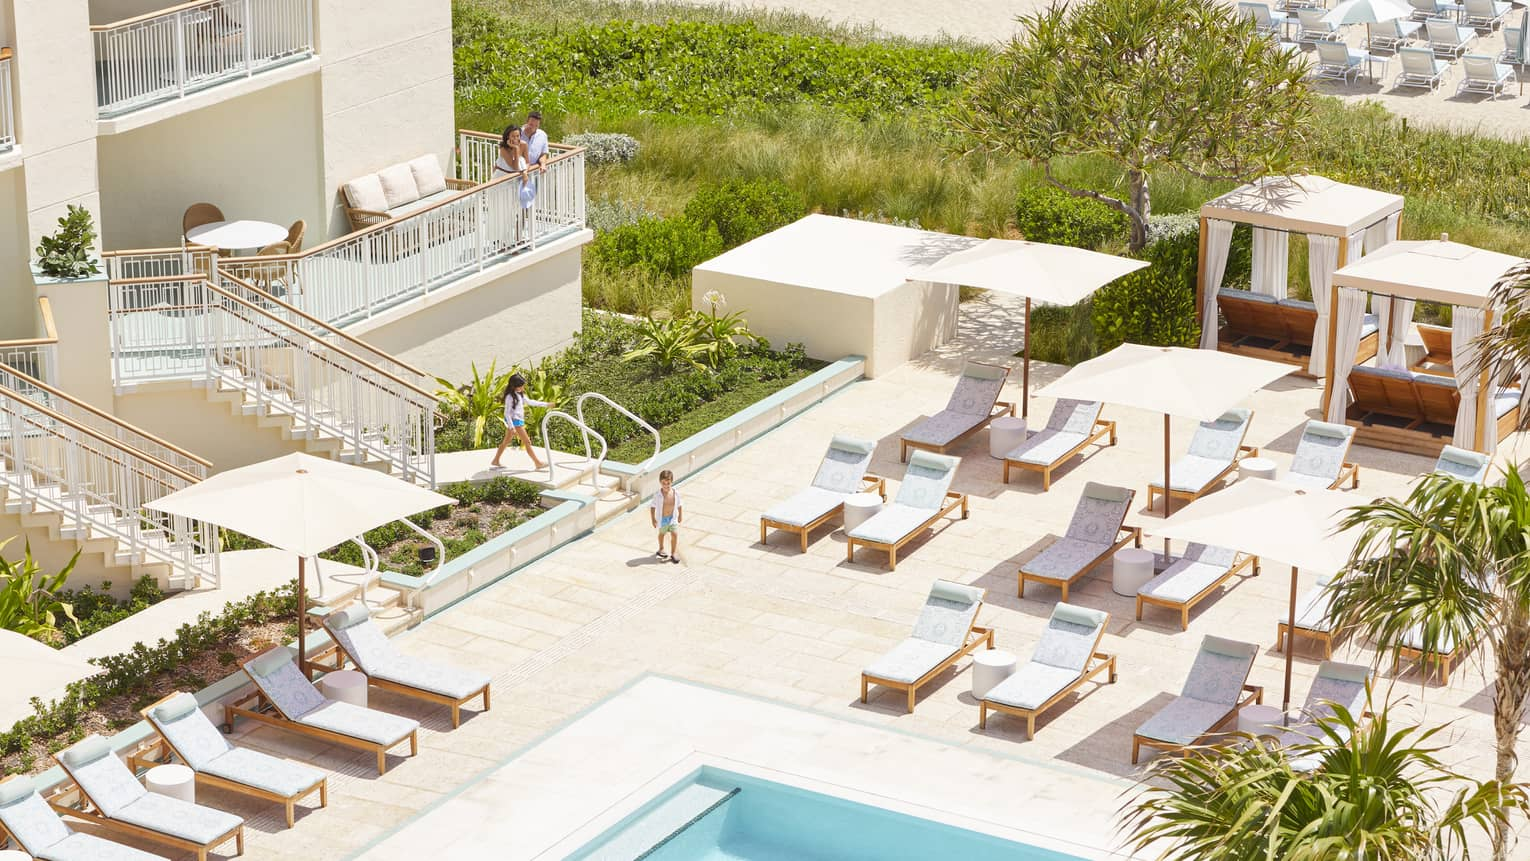 Plush lounge chairs and square umbrellas are arranged around a pool